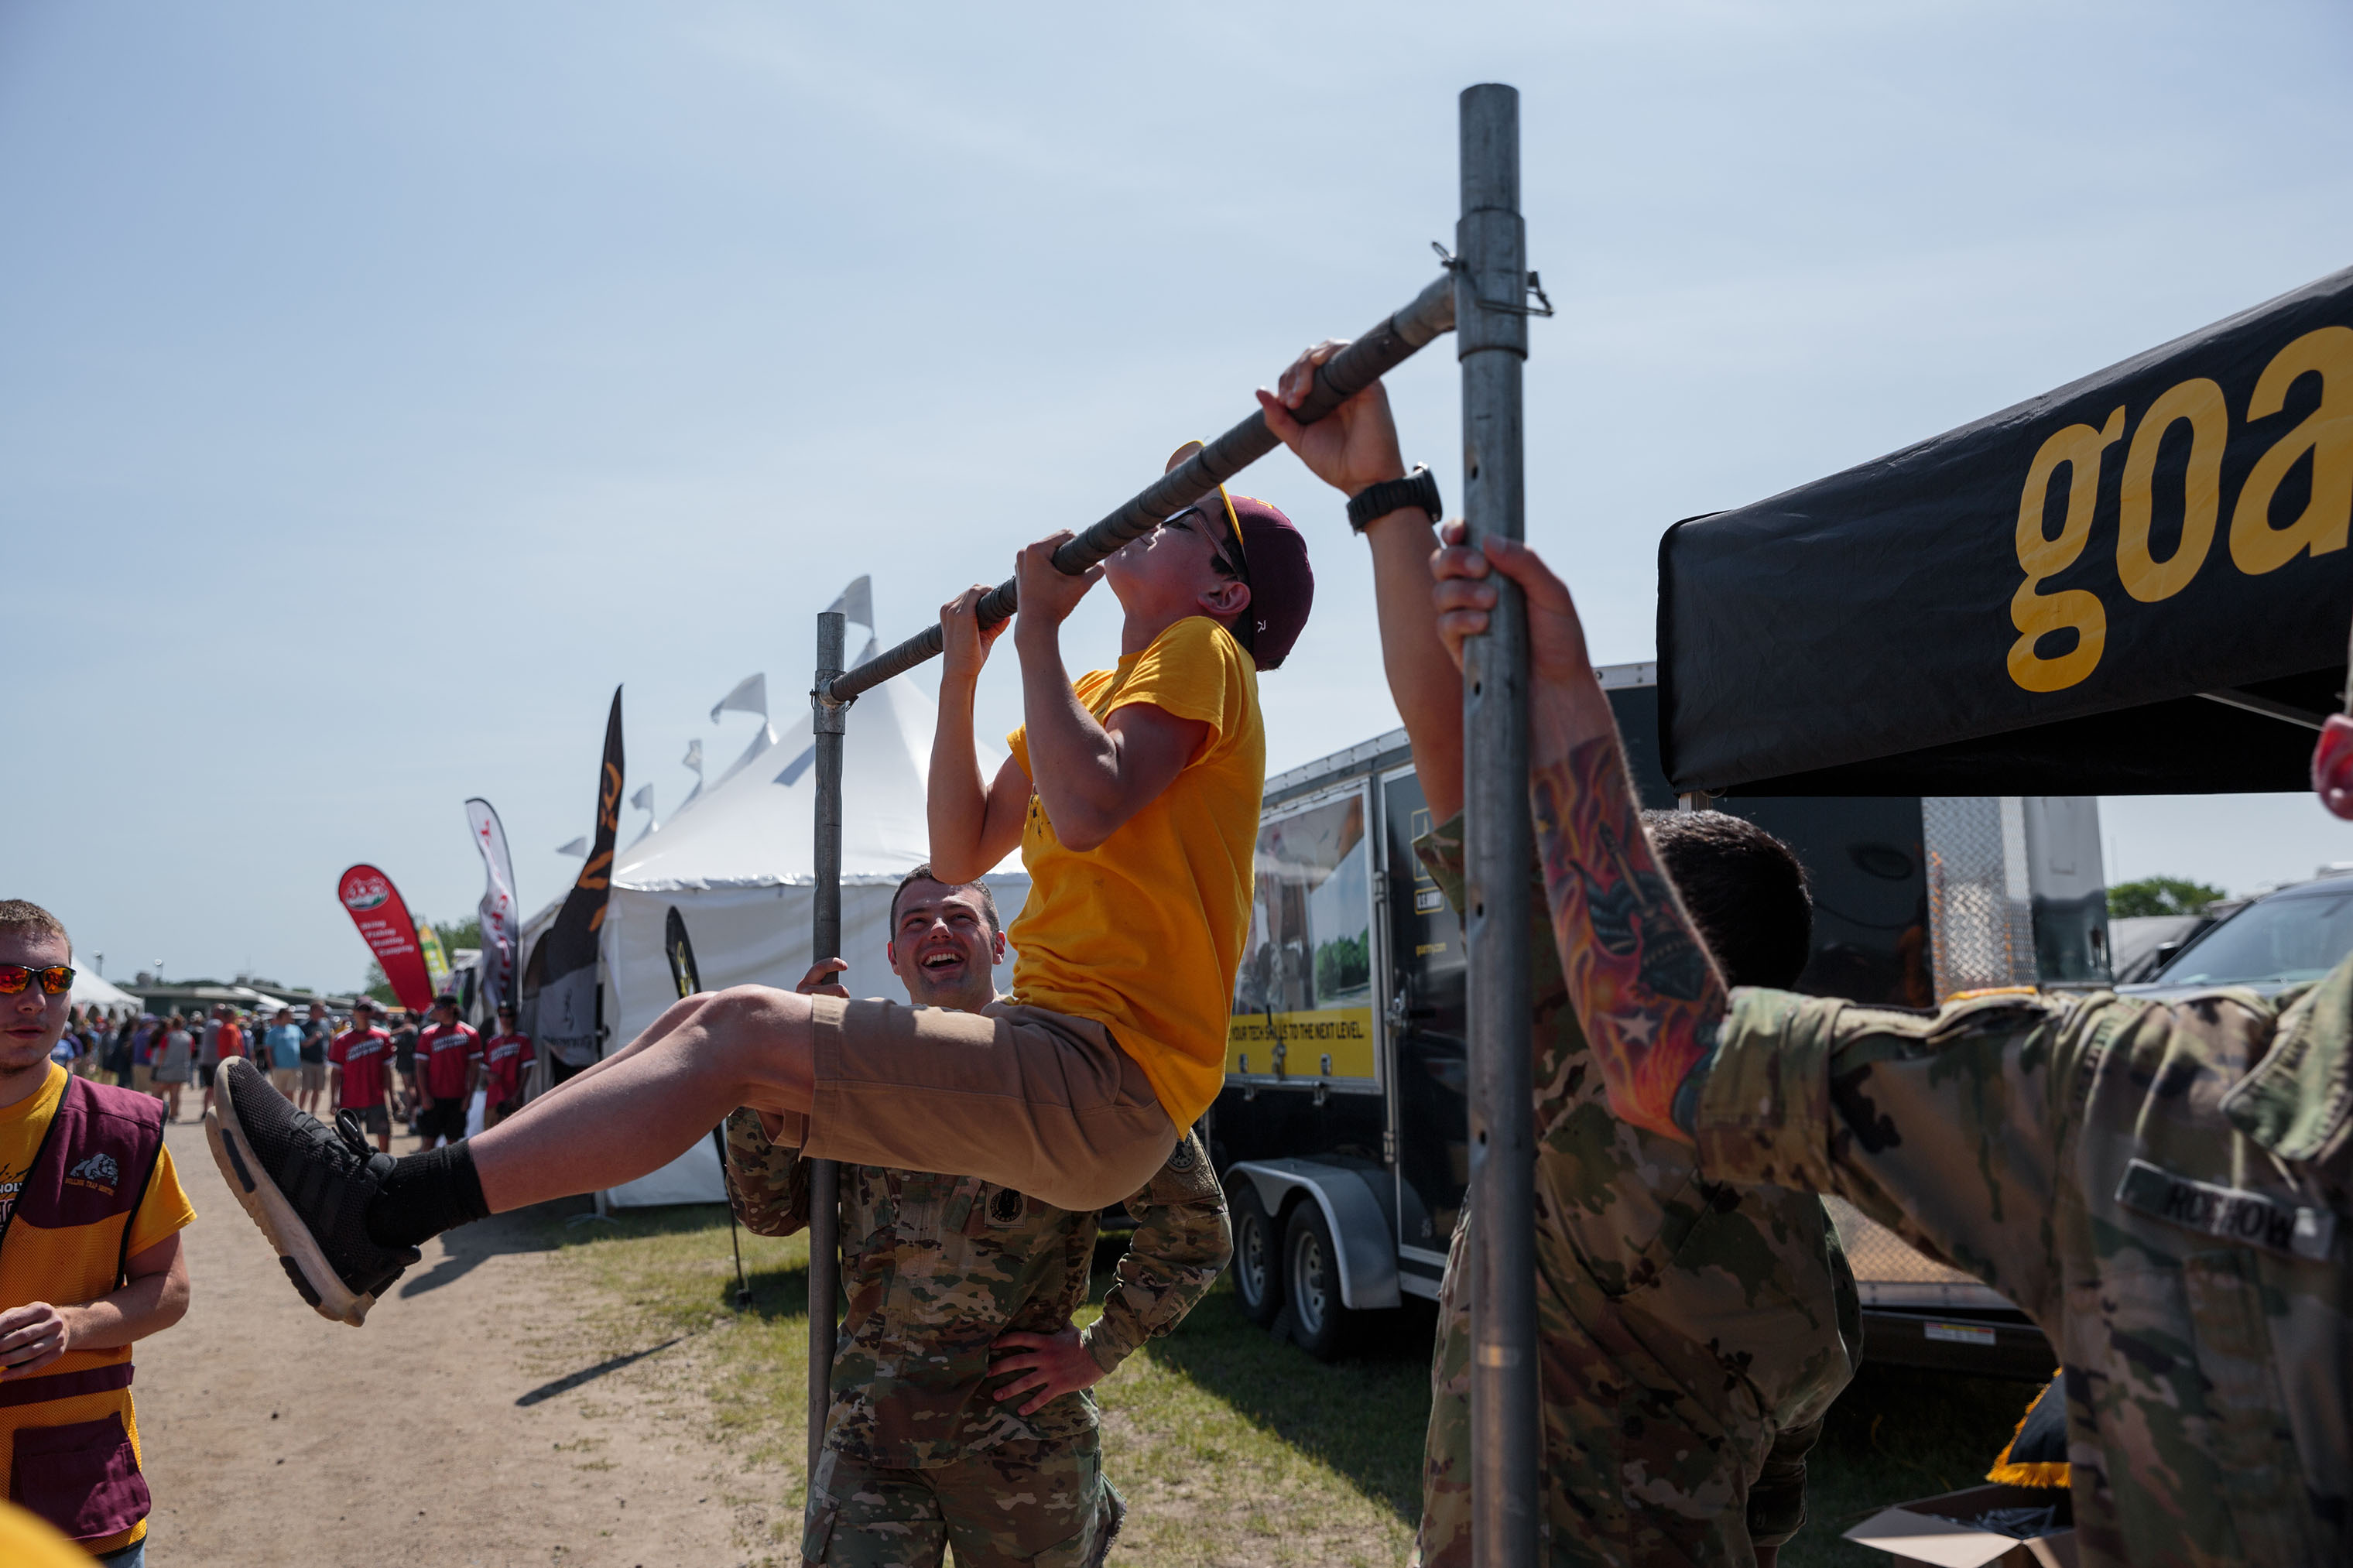 Students participate in a pull-up challenge offered by the  Go-Army  vendor tent at the annual trap shooting championship.